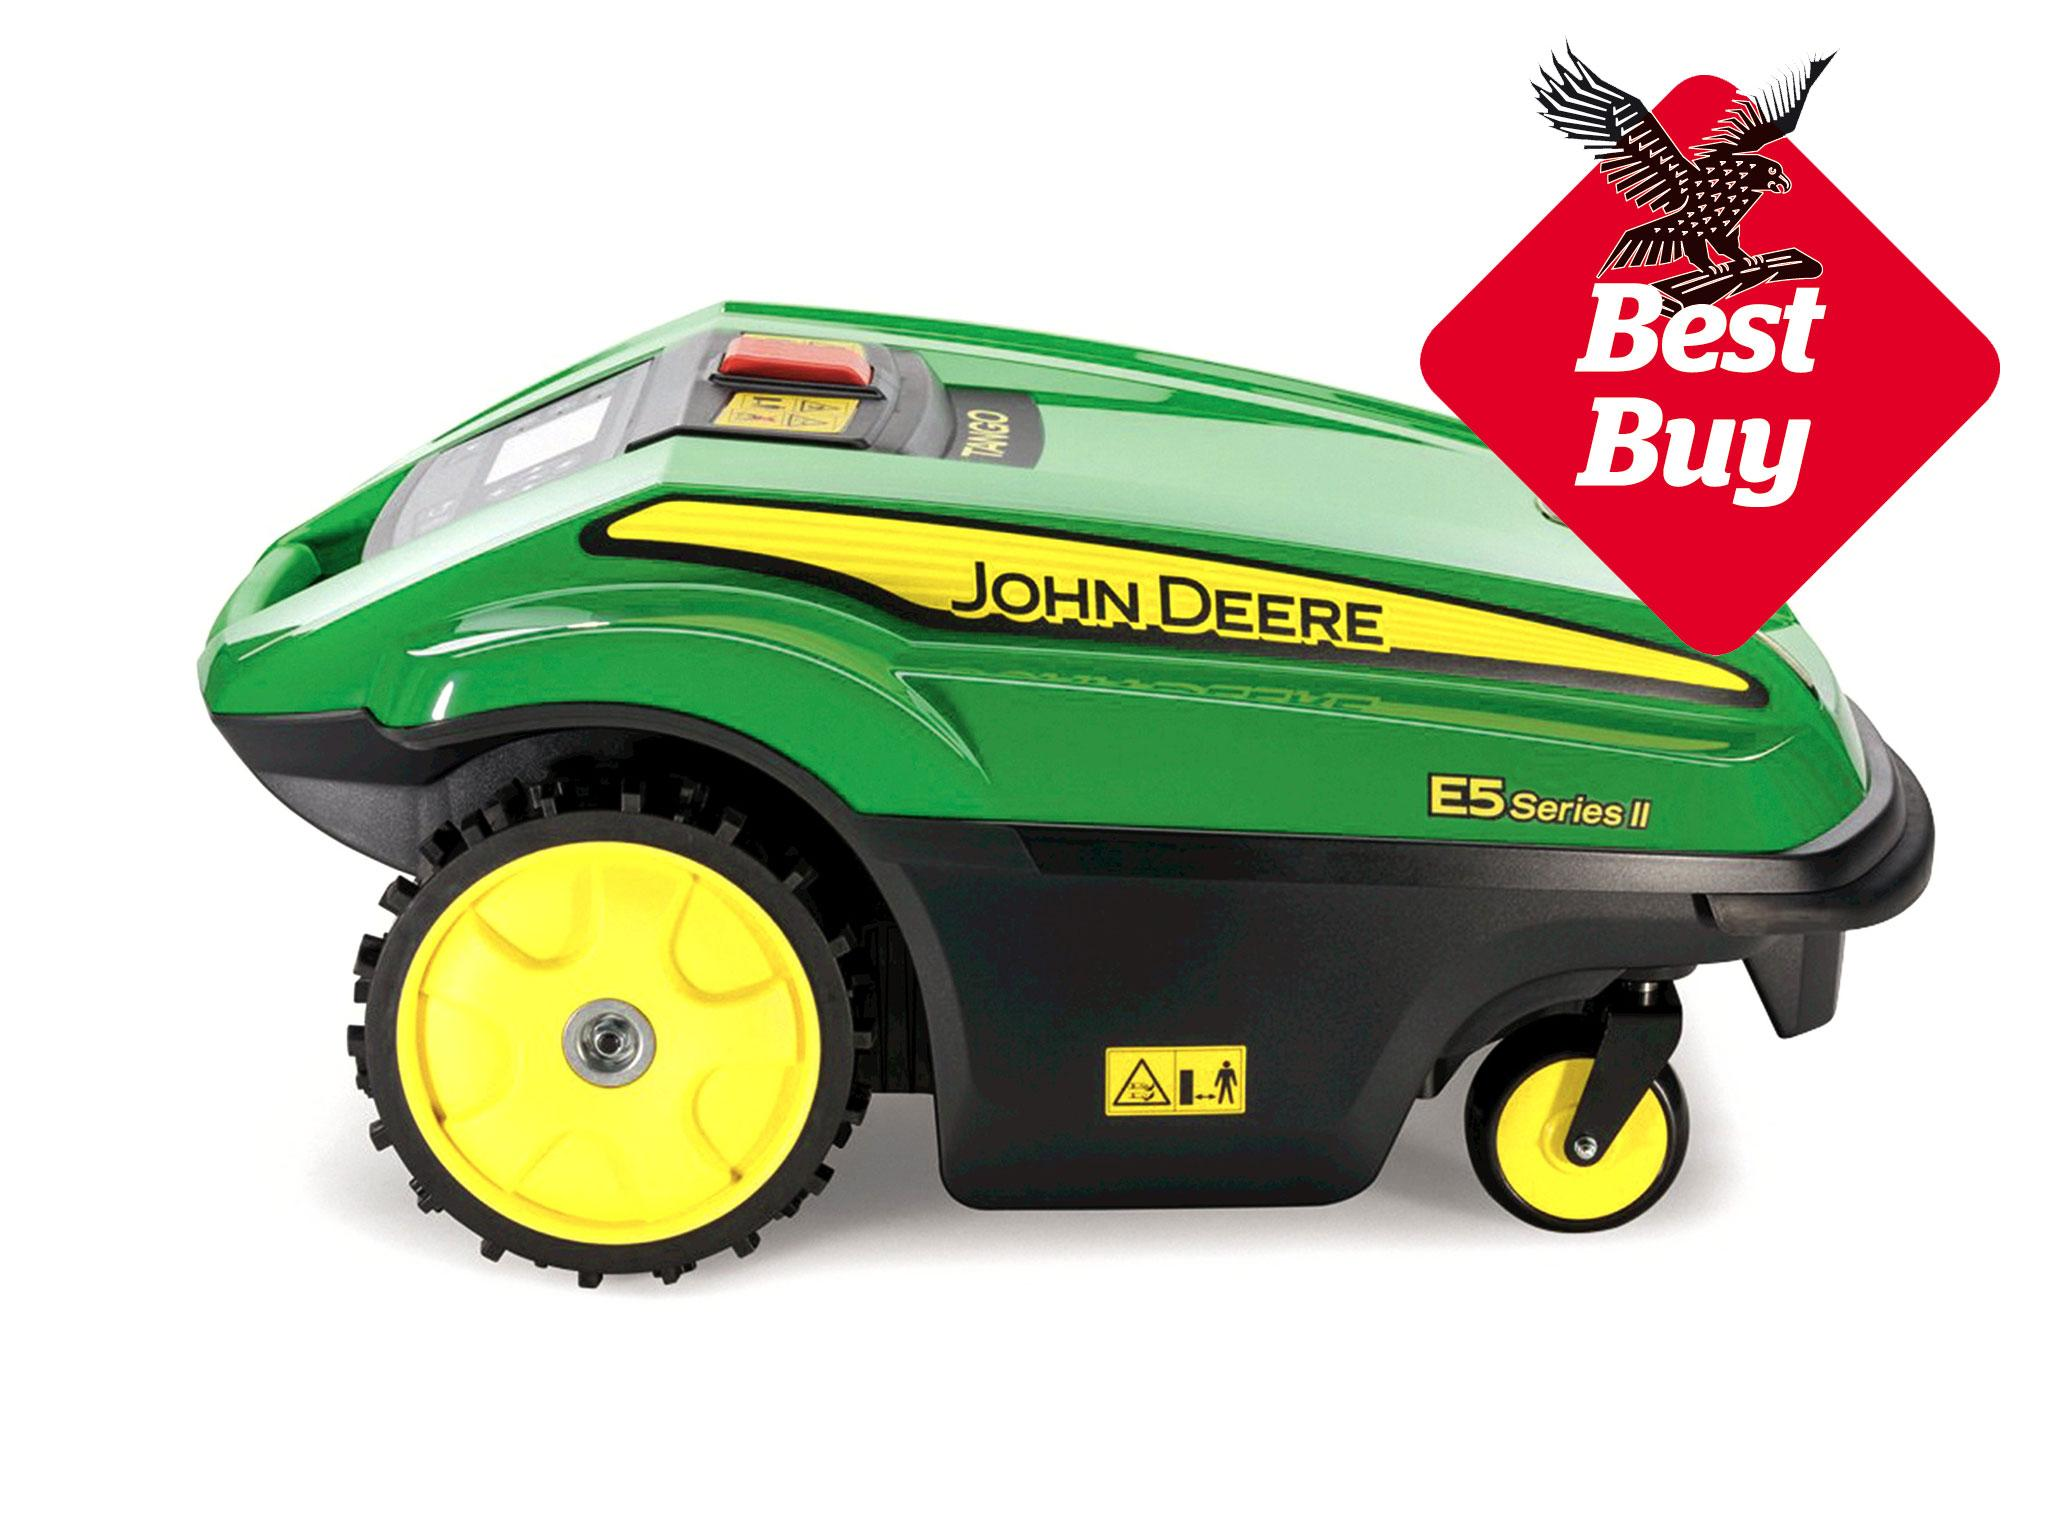 9 best robot lawnmowers the independent john deere tango e5 series ii 2130 john deere fandeluxe